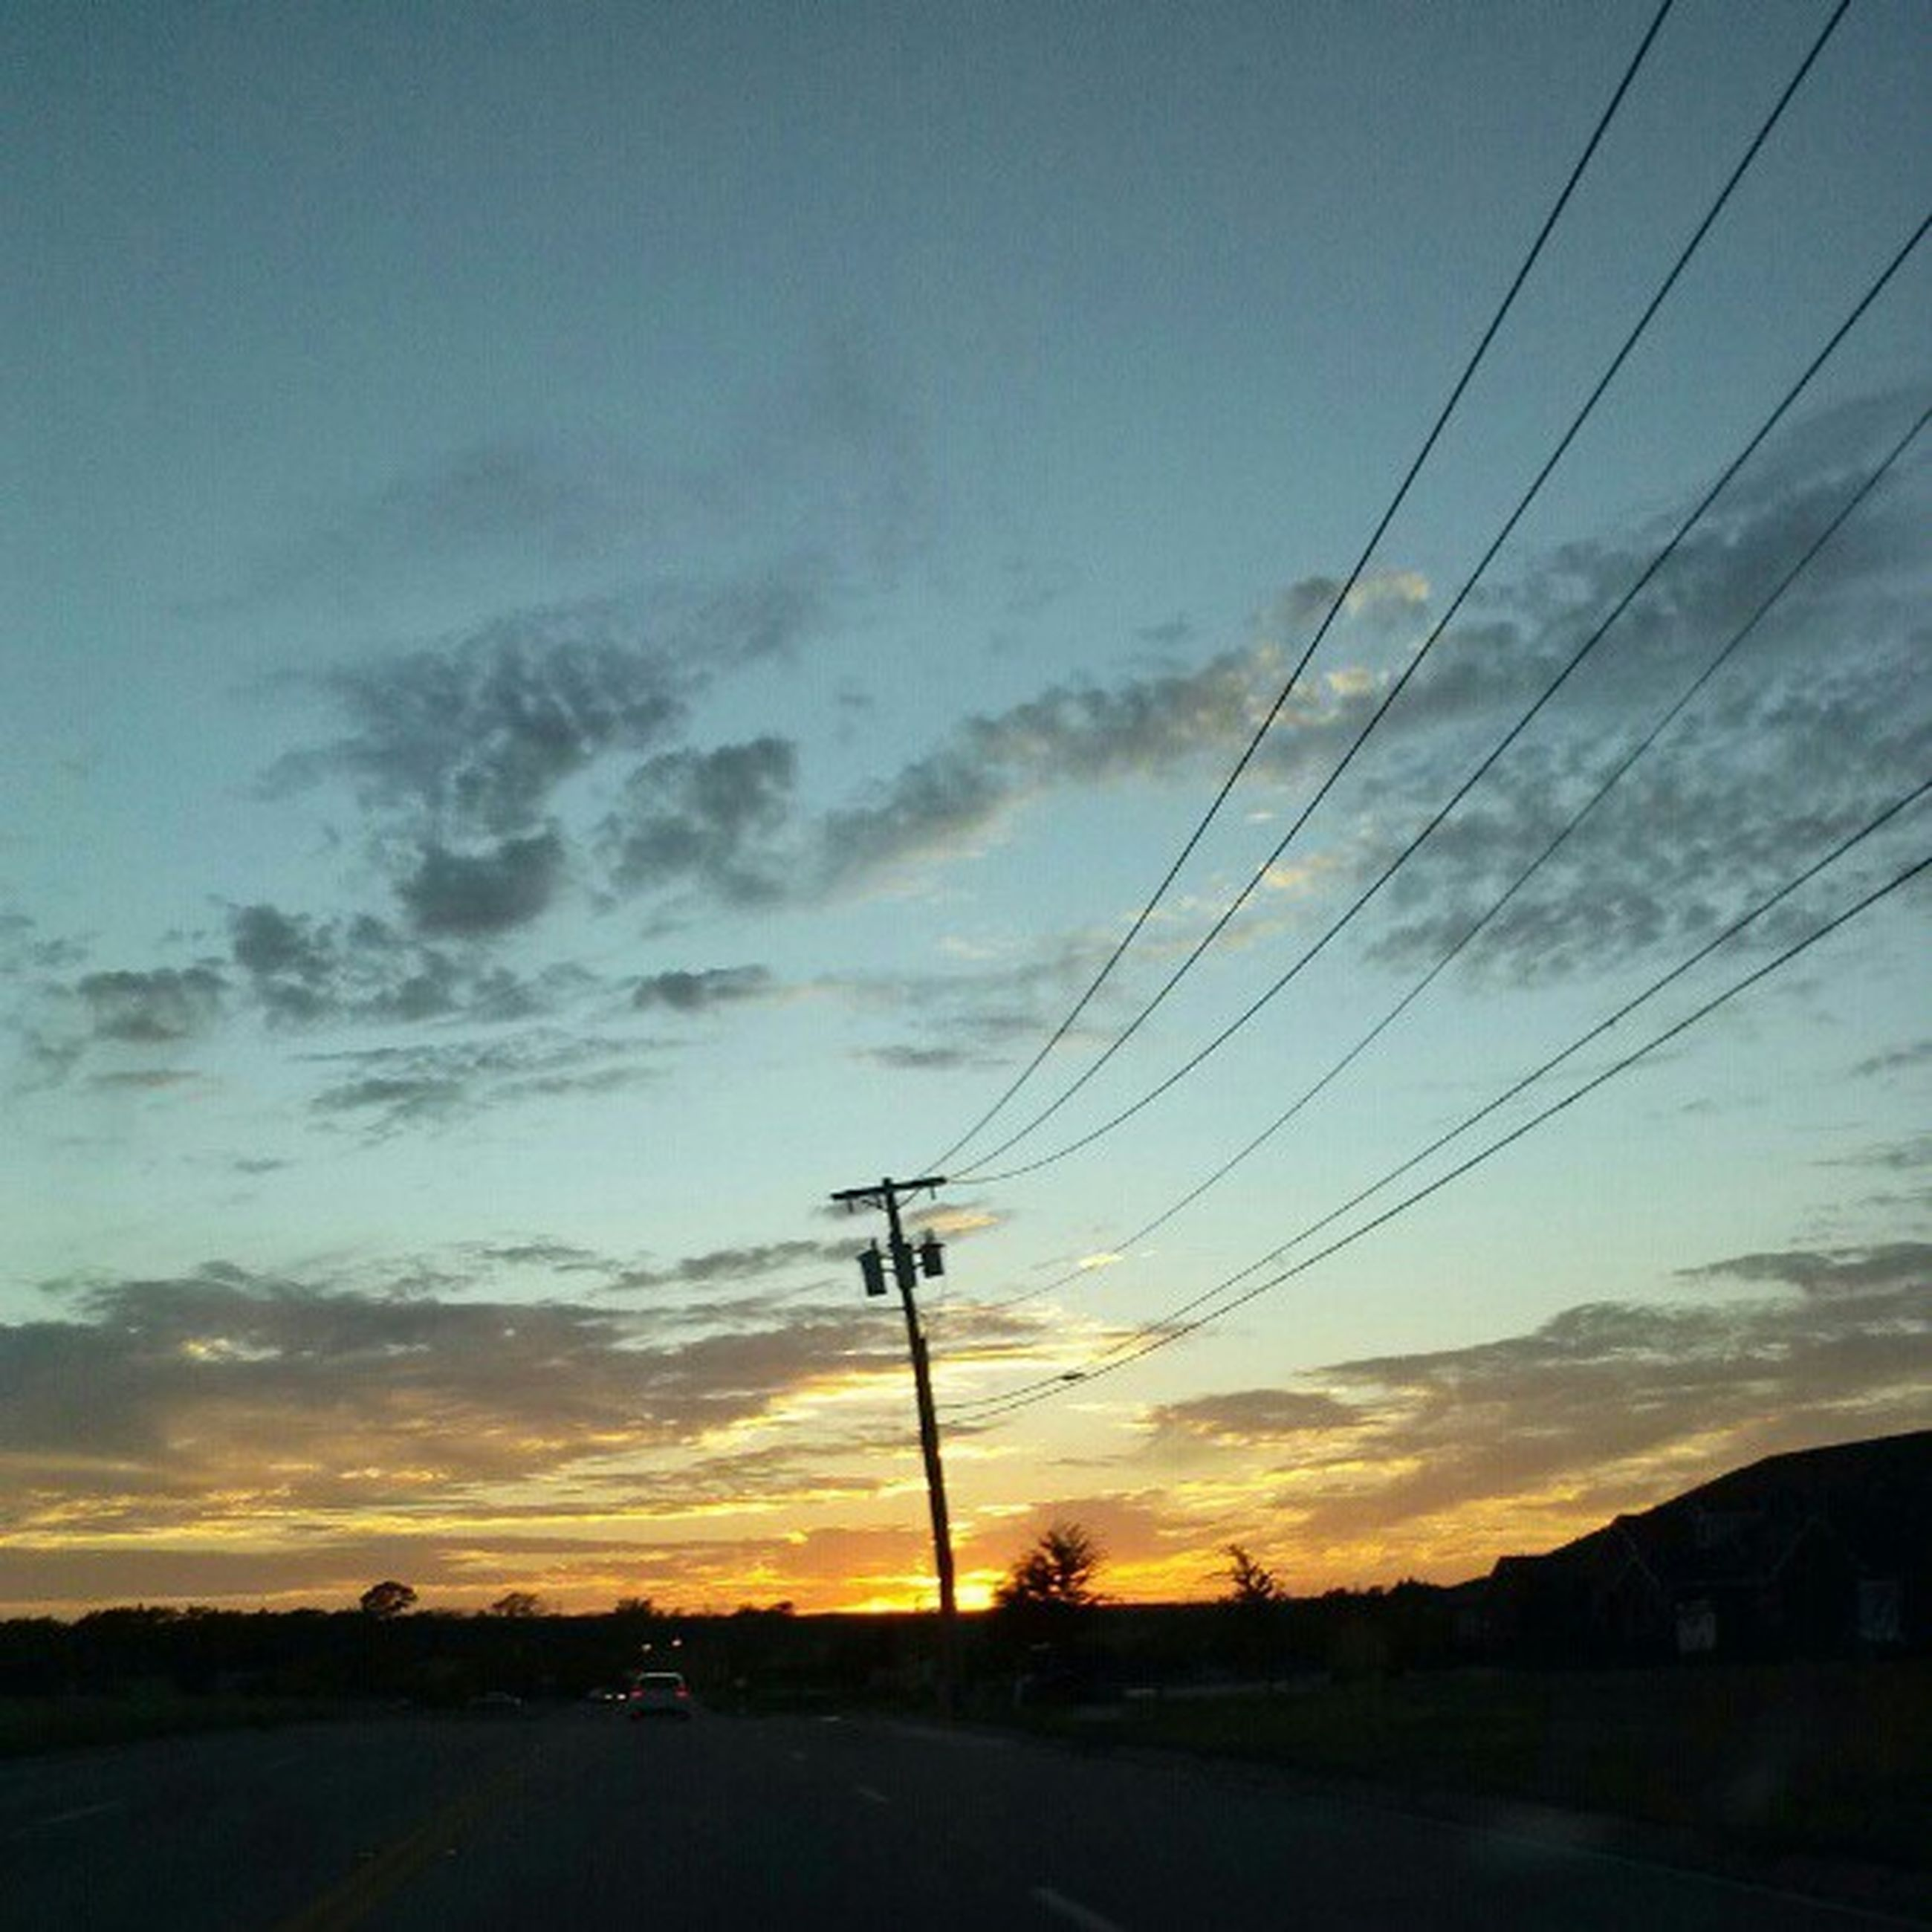 electricity pylon, sunset, power line, sky, road, electricity, power supply, silhouette, fuel and power generation, transportation, connection, landscape, cable, the way forward, cloud - sky, cloud, tranquil scene, tranquility, scenics, nature